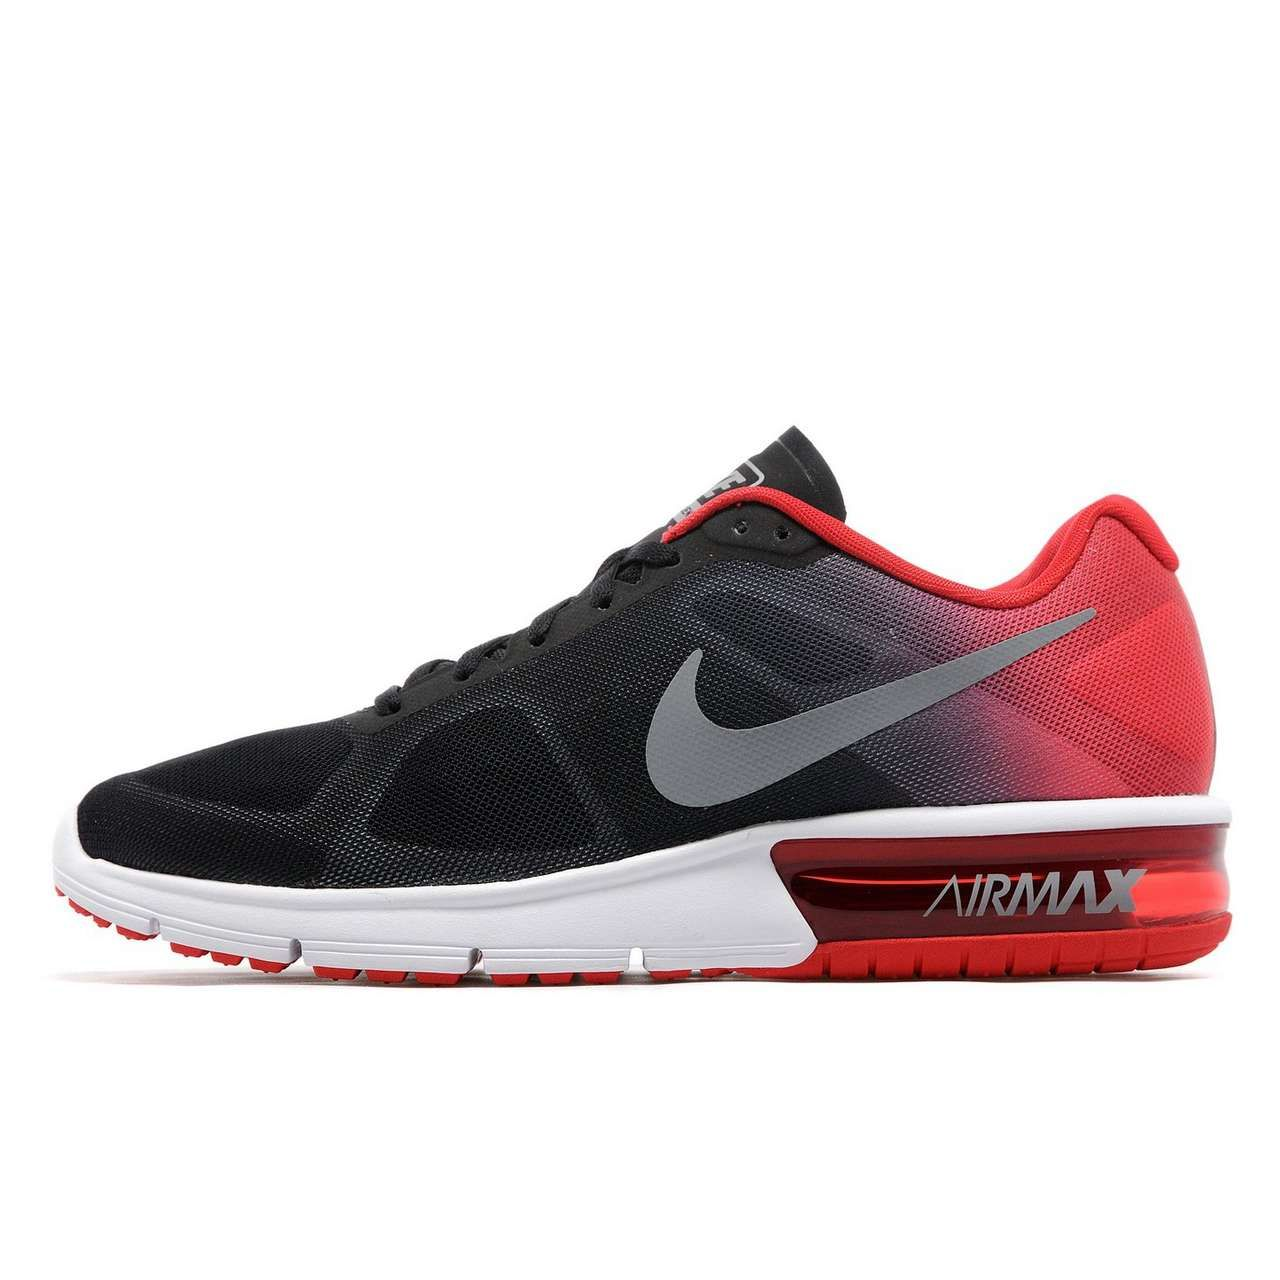 brand new 8a54c 6b0f7 Nike Air Max Sequent | FeetJackets to the Max - Nike air max, Nike ...